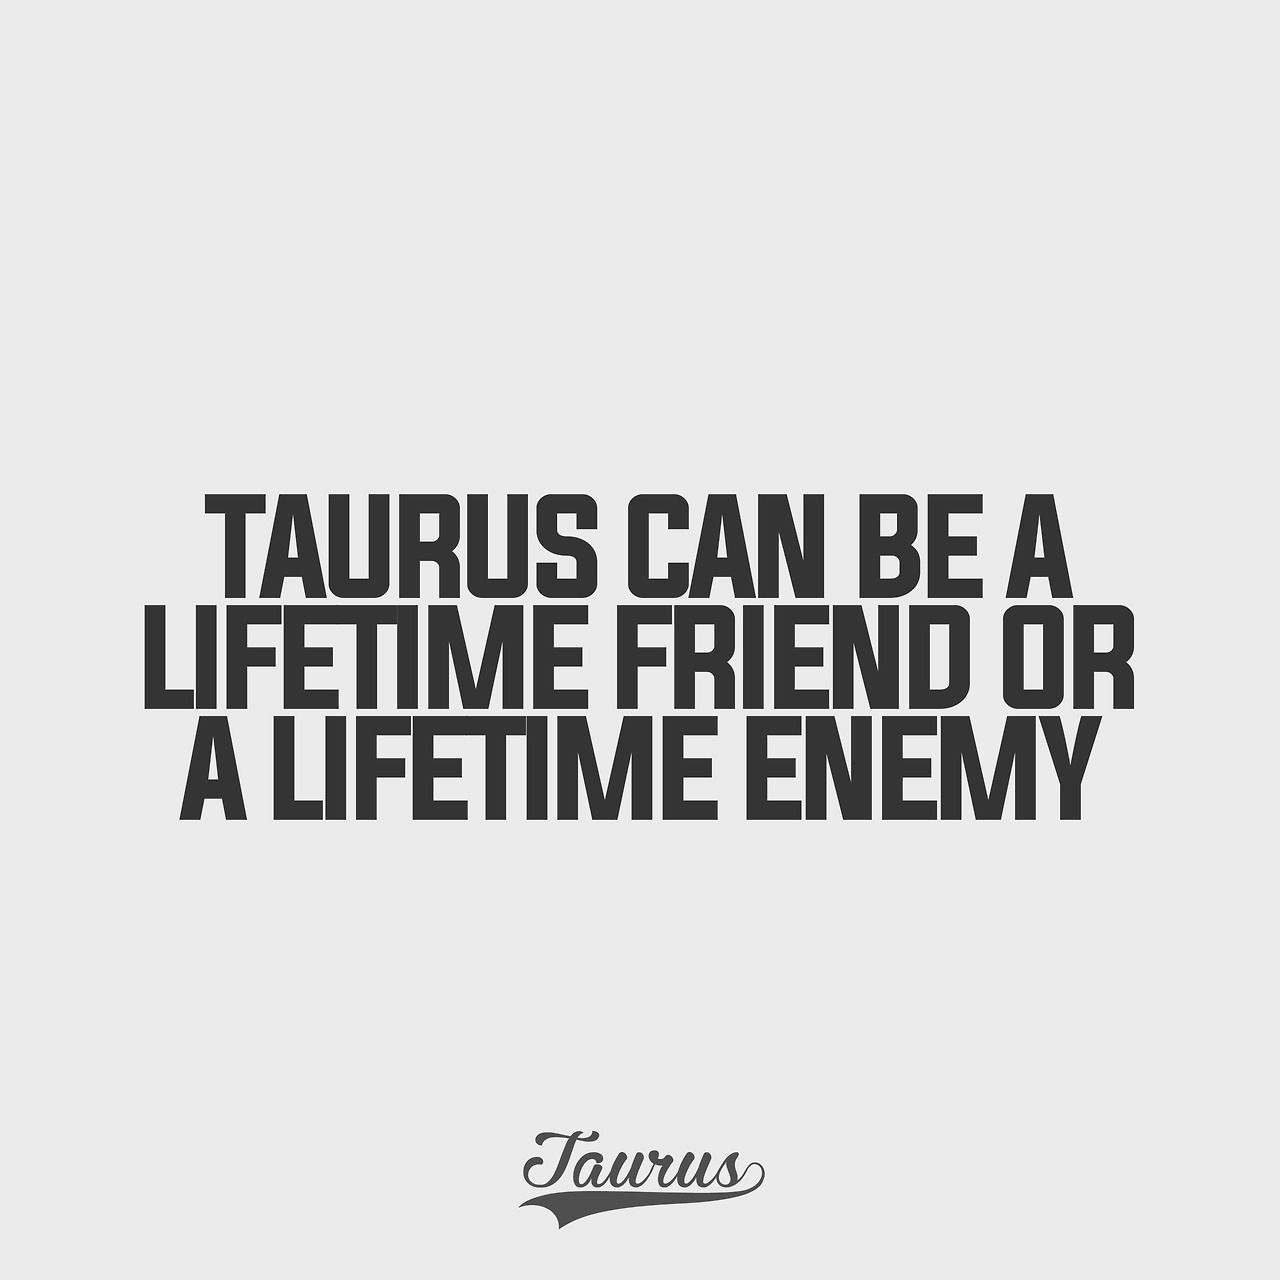 Best Friend Enemy Quotes: Taurus And Scorpio 2 Signs Who Make The Best Friend Or Ur